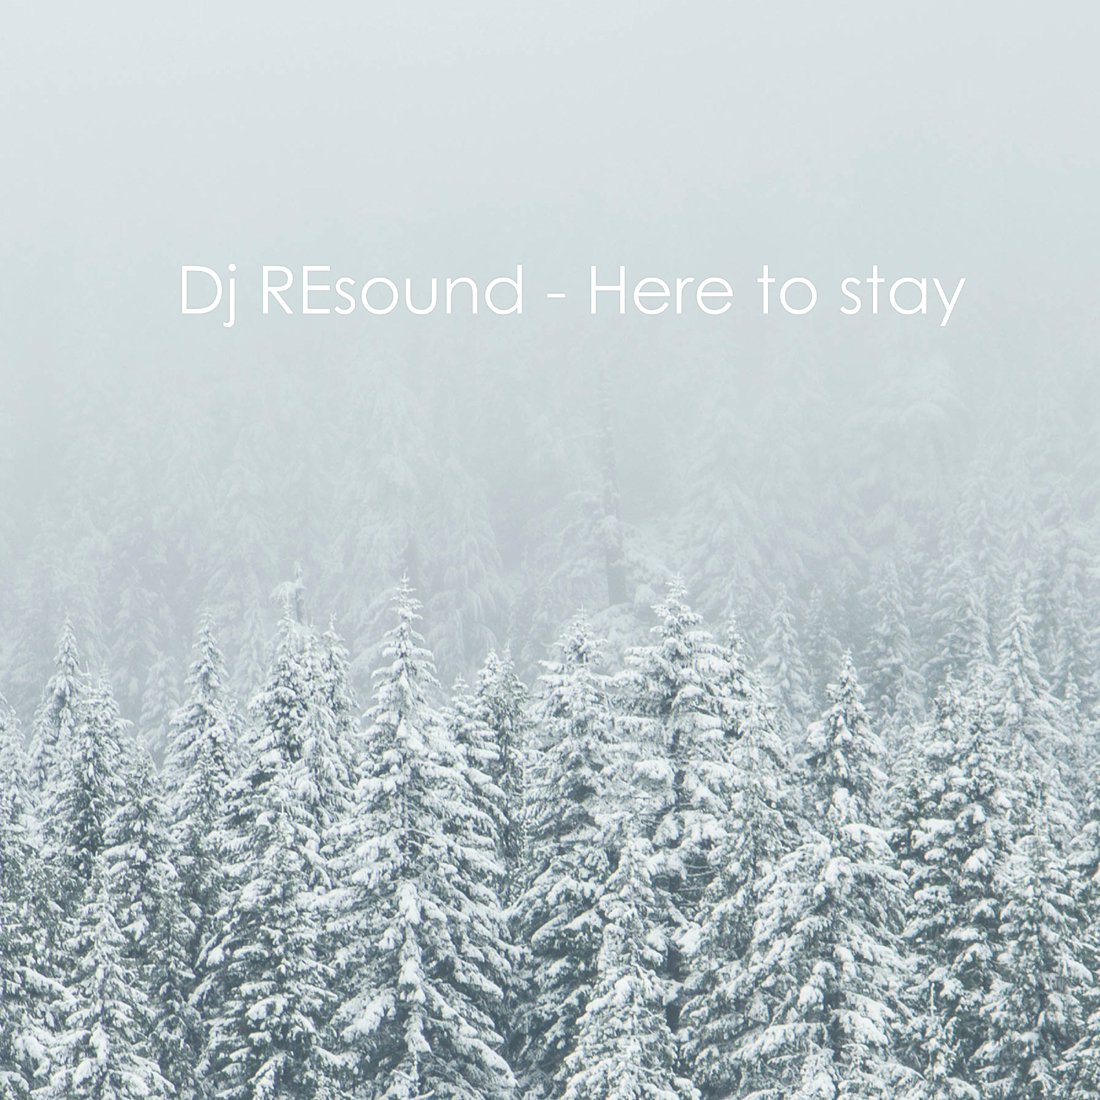 Dj REsound - here to stay